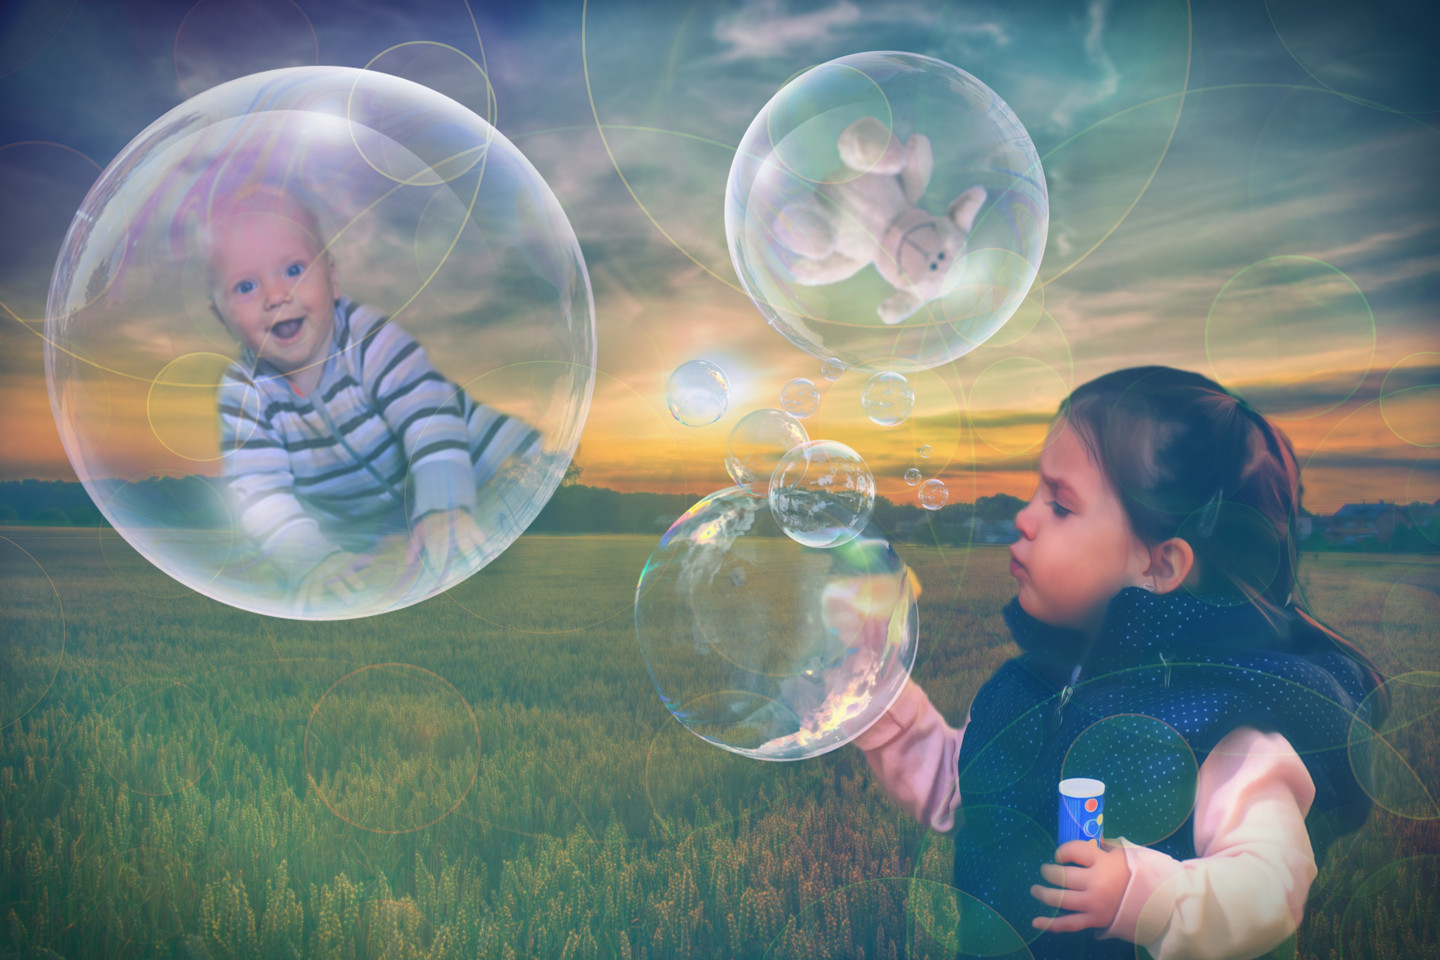 Bubbles are Fun!